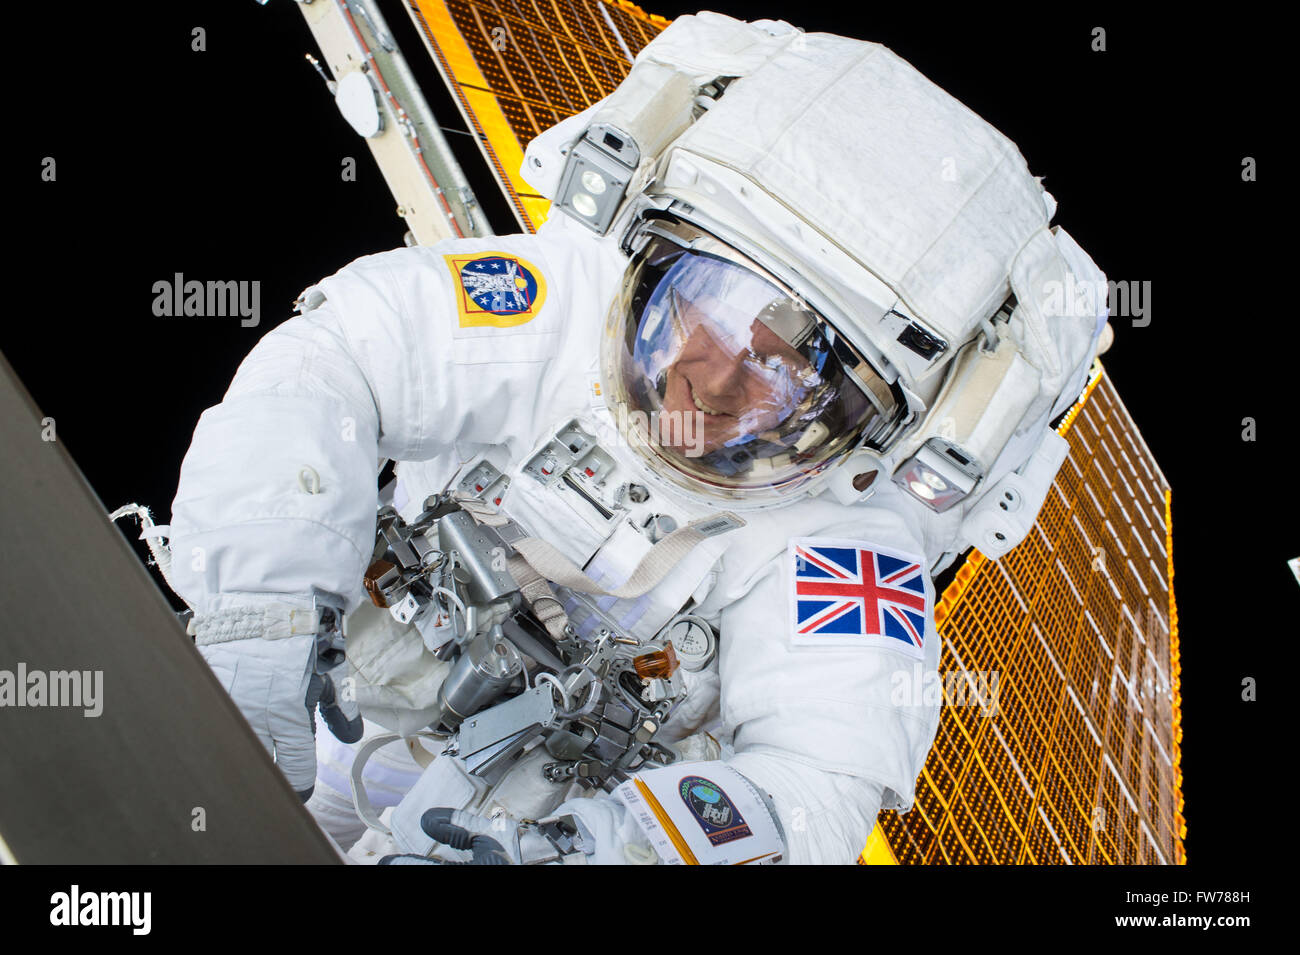 European Space Agency astronaut Tim Peake during a spacewalk outside the International Space Station January 15, - Stock Image